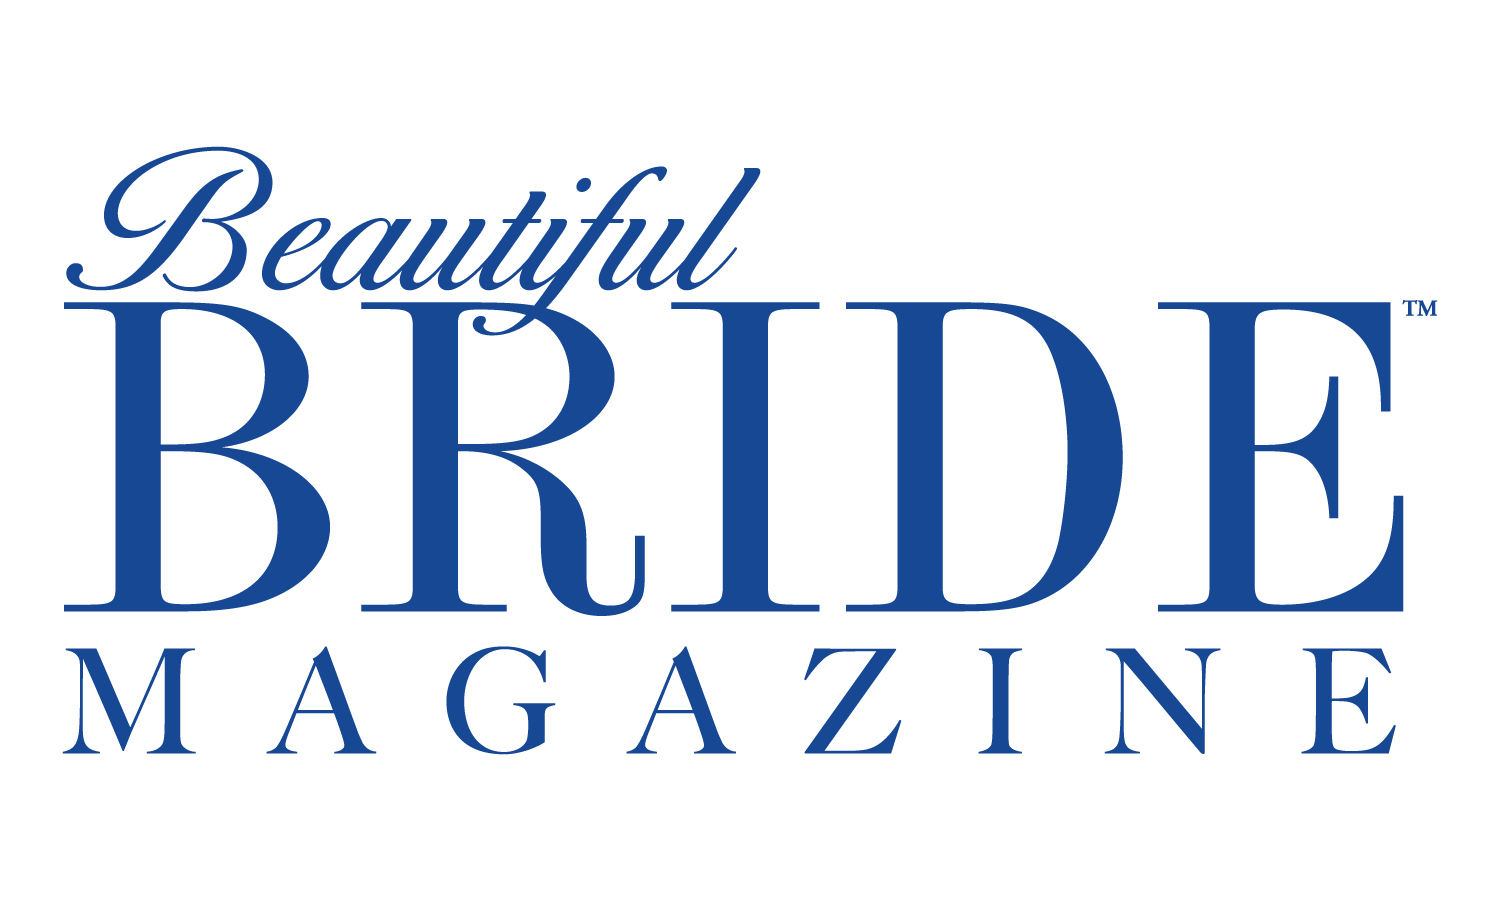 Beautiful Bride Magazine.jpg